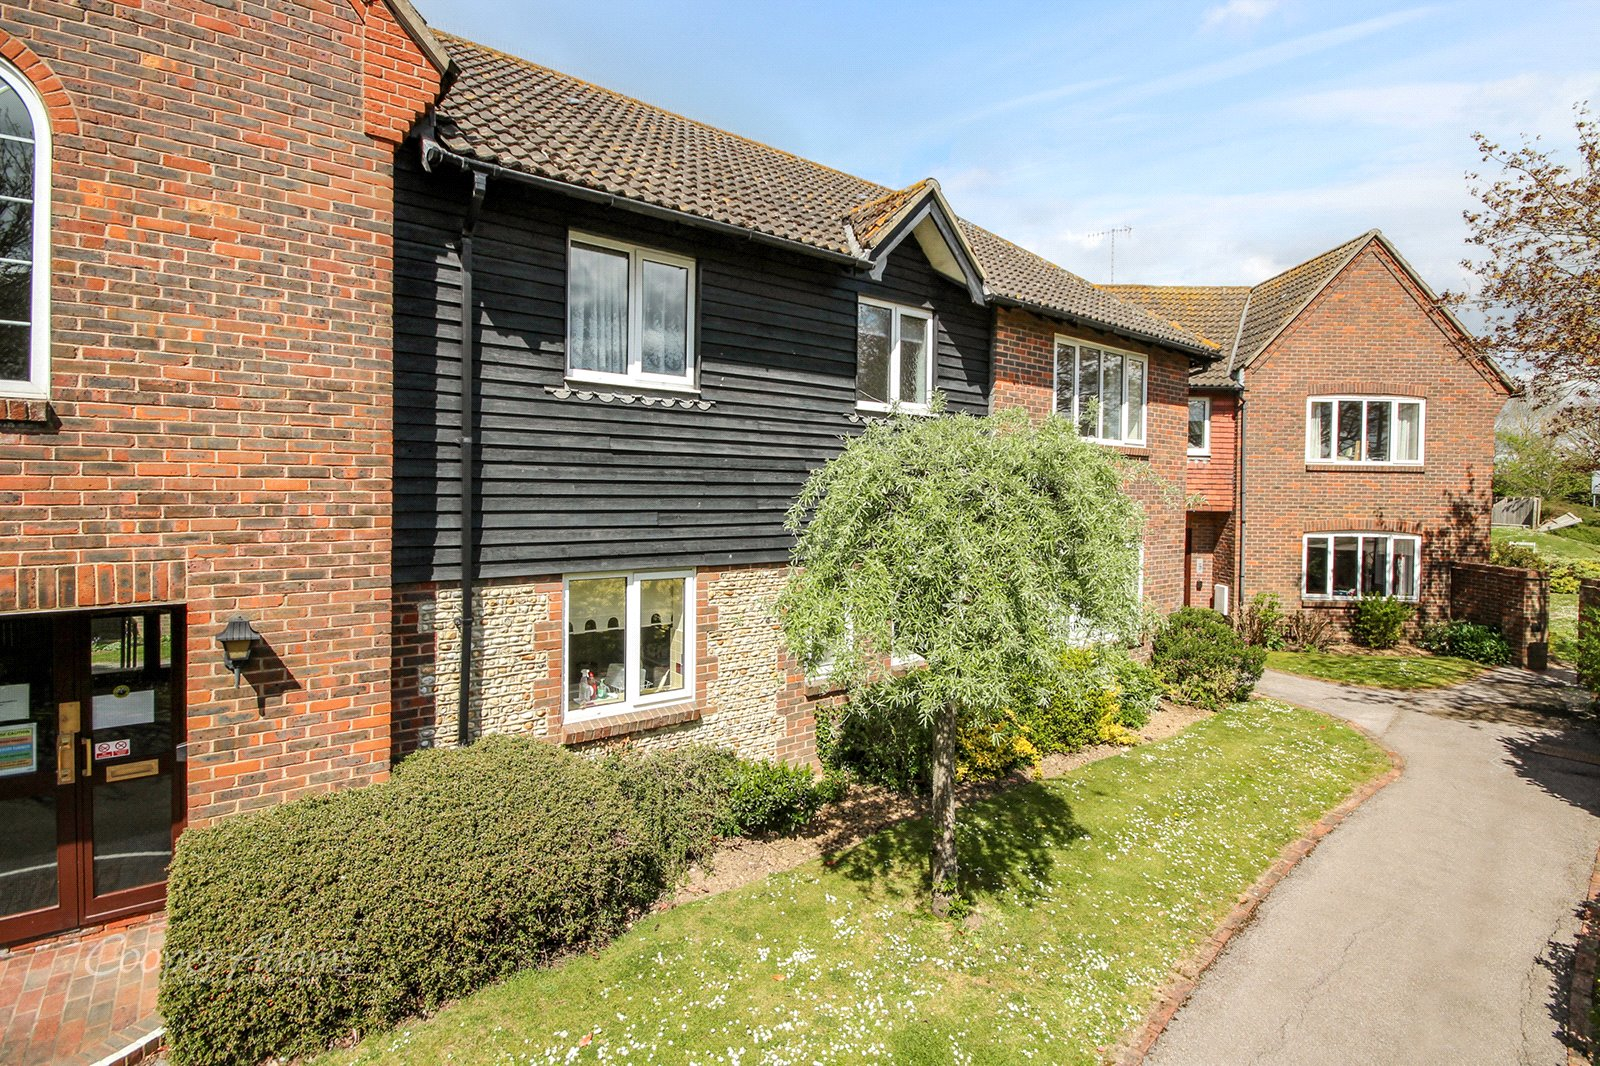 2 bed apartment for sale in The Leas, Rustington, BN16